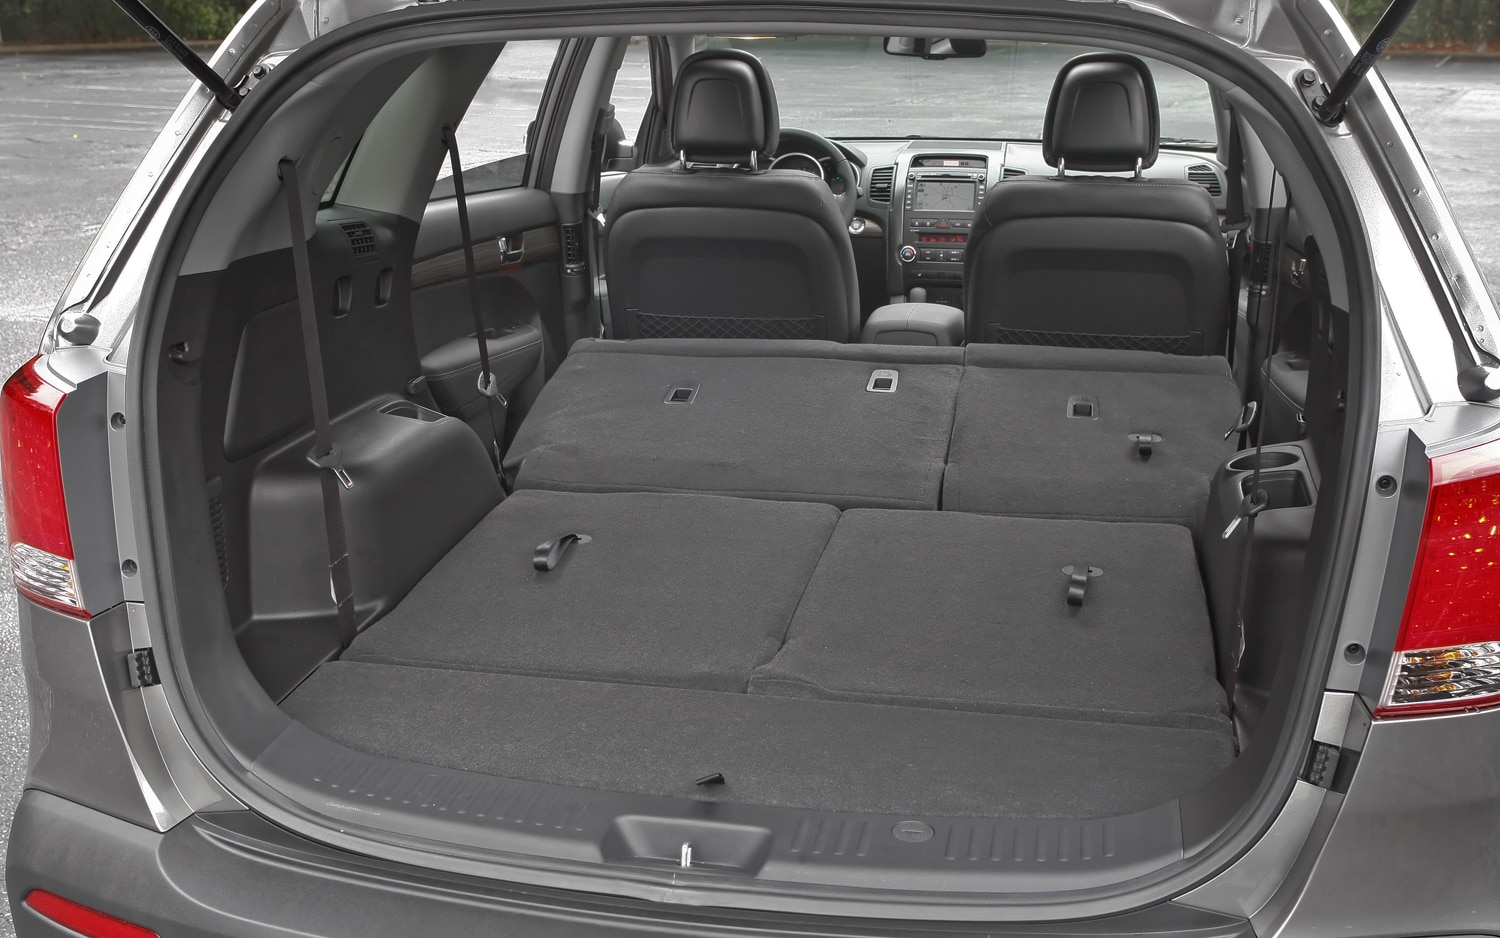 2012 Kia Sorento Extra Trunk Space